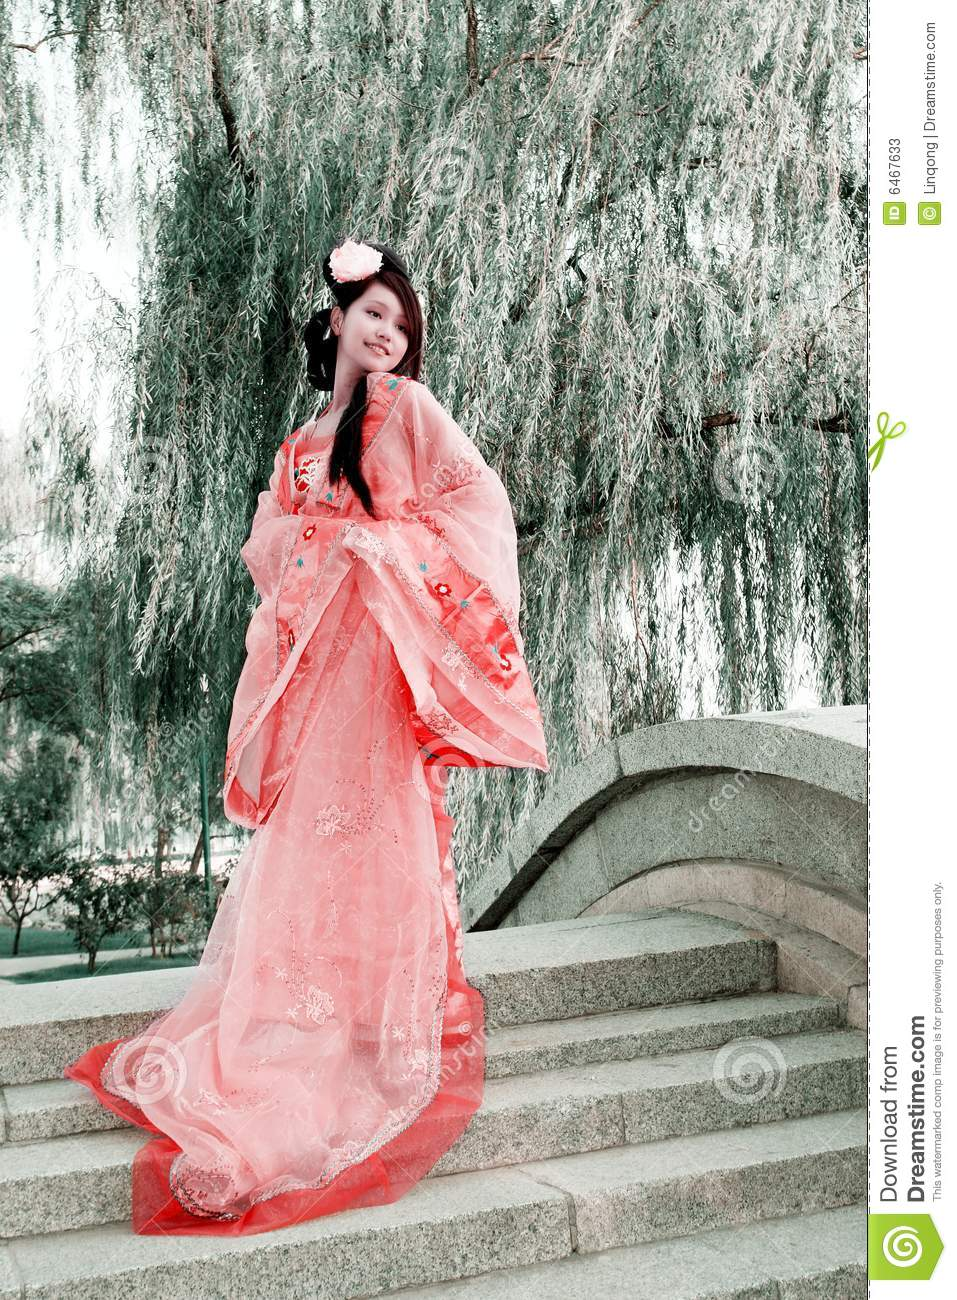 China Beautiful Girl Wallpaper Classical Beauty In China Stock Image Image Of Beijing